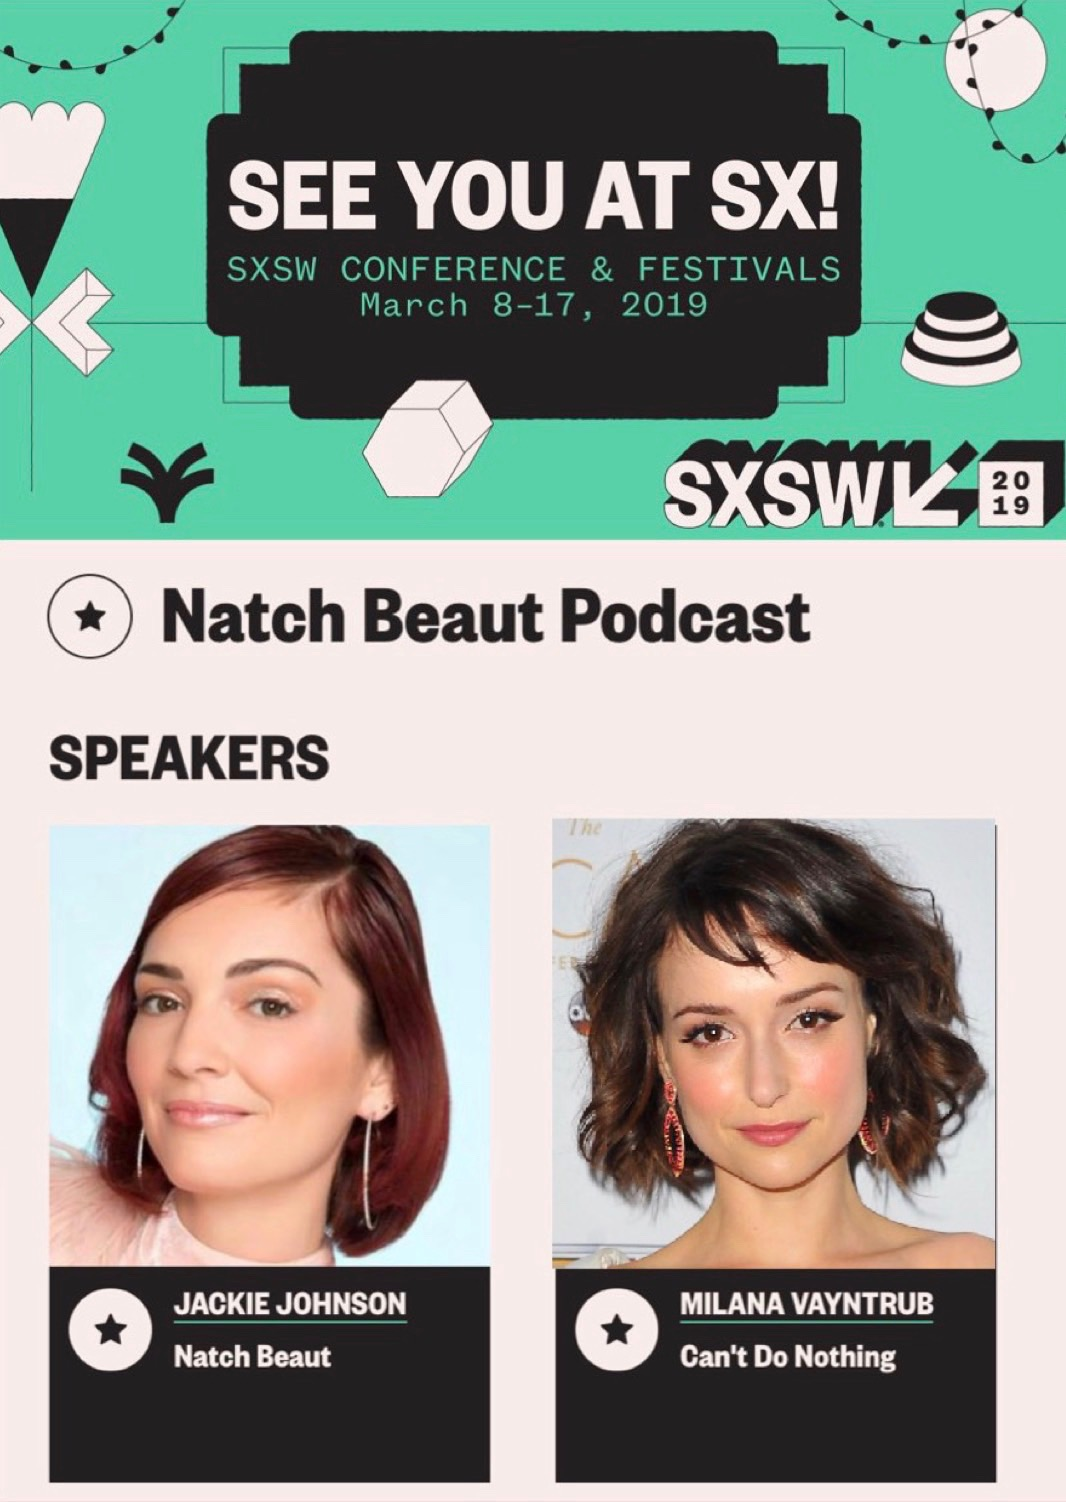 Poster for Natch Beaut at SXSW 2019 with guest Milana Vayntrub.